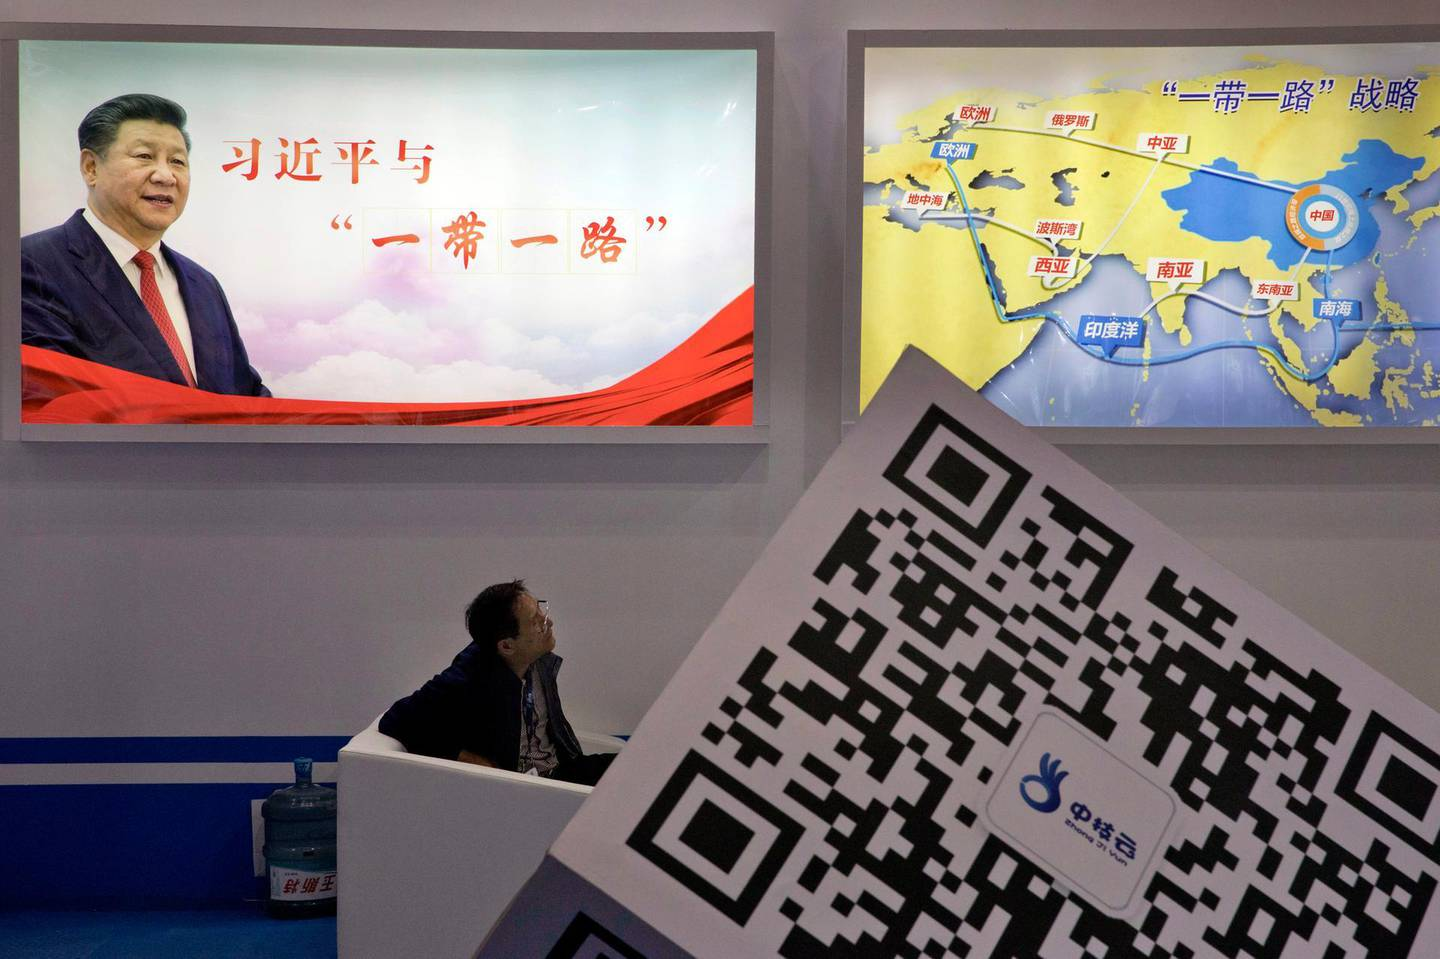 """FILE - In this April 28, 2017, file photo, an attendee at a conference looks up near a portrait of Chinese President Xi Jinping with the words """"Xi Jinping and One Belt One Road"""" and """"One Belt One Road strategy,"""" in Beijing. Seventy-five years after Japan's surrender in World War II, and 30 years after its economic bubble popped, the emergence of a 21st century Asian power is shaking up the status quo. As Japan did, China is butting heads with the established Western powers, which increasingly see its growing economic and military prowess as a threat. (AP Photo/Ng Han Guan, File)"""